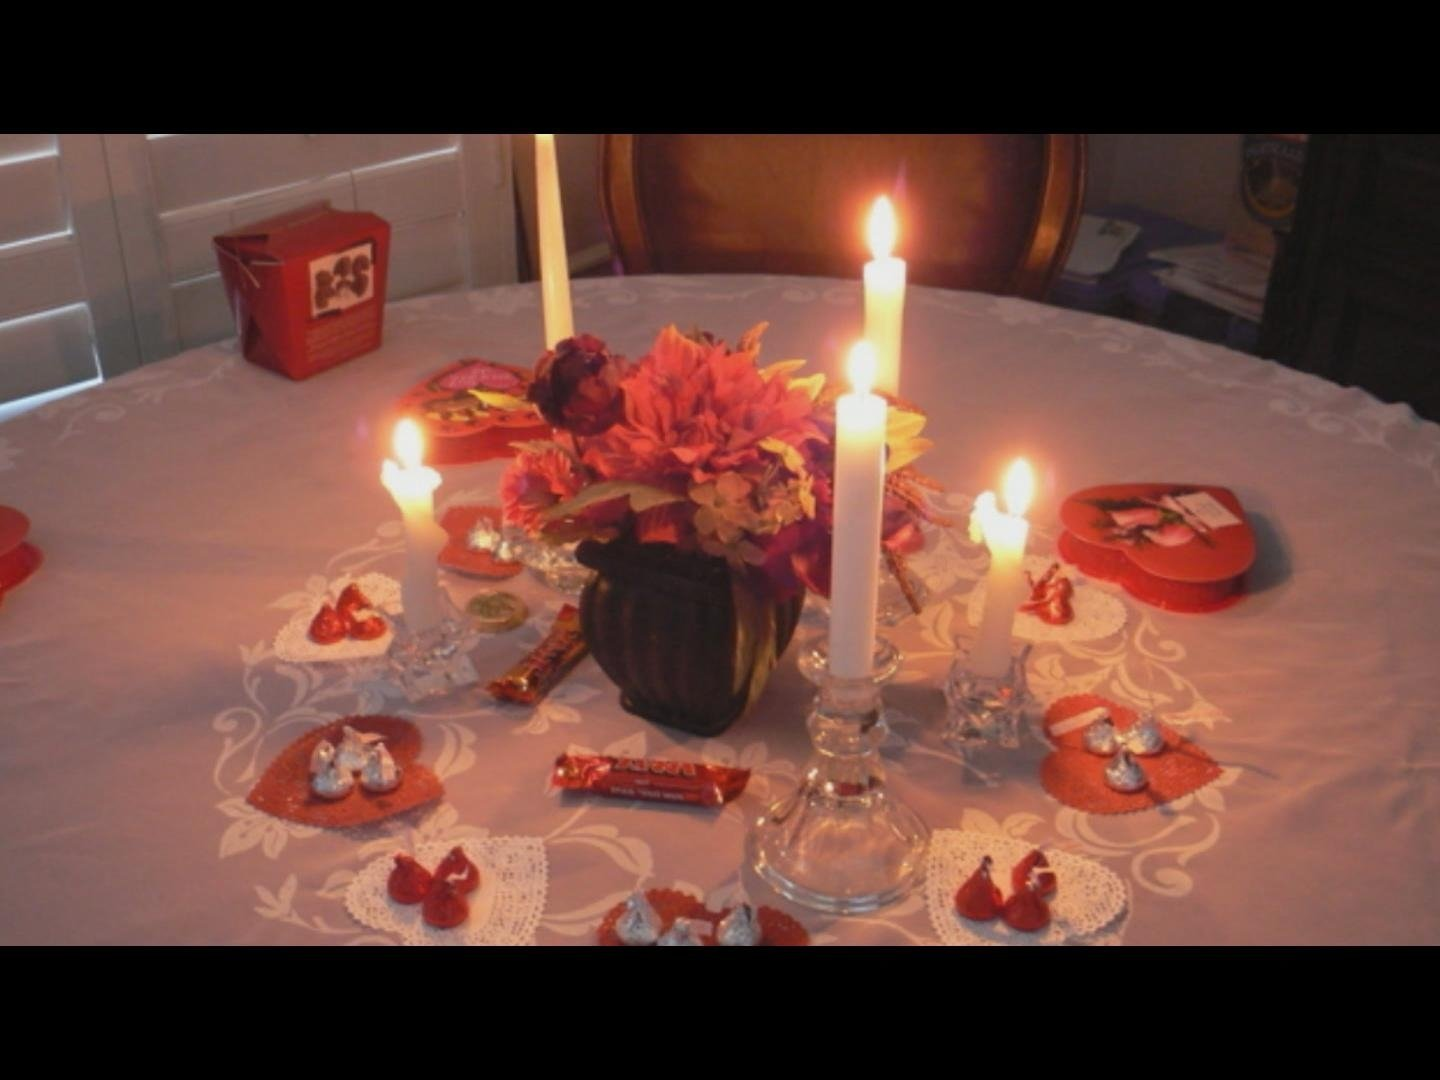 10 Great Romantic Dinner Ideas For Him very attractive romantic dinner ideas at home for him home designs 2021